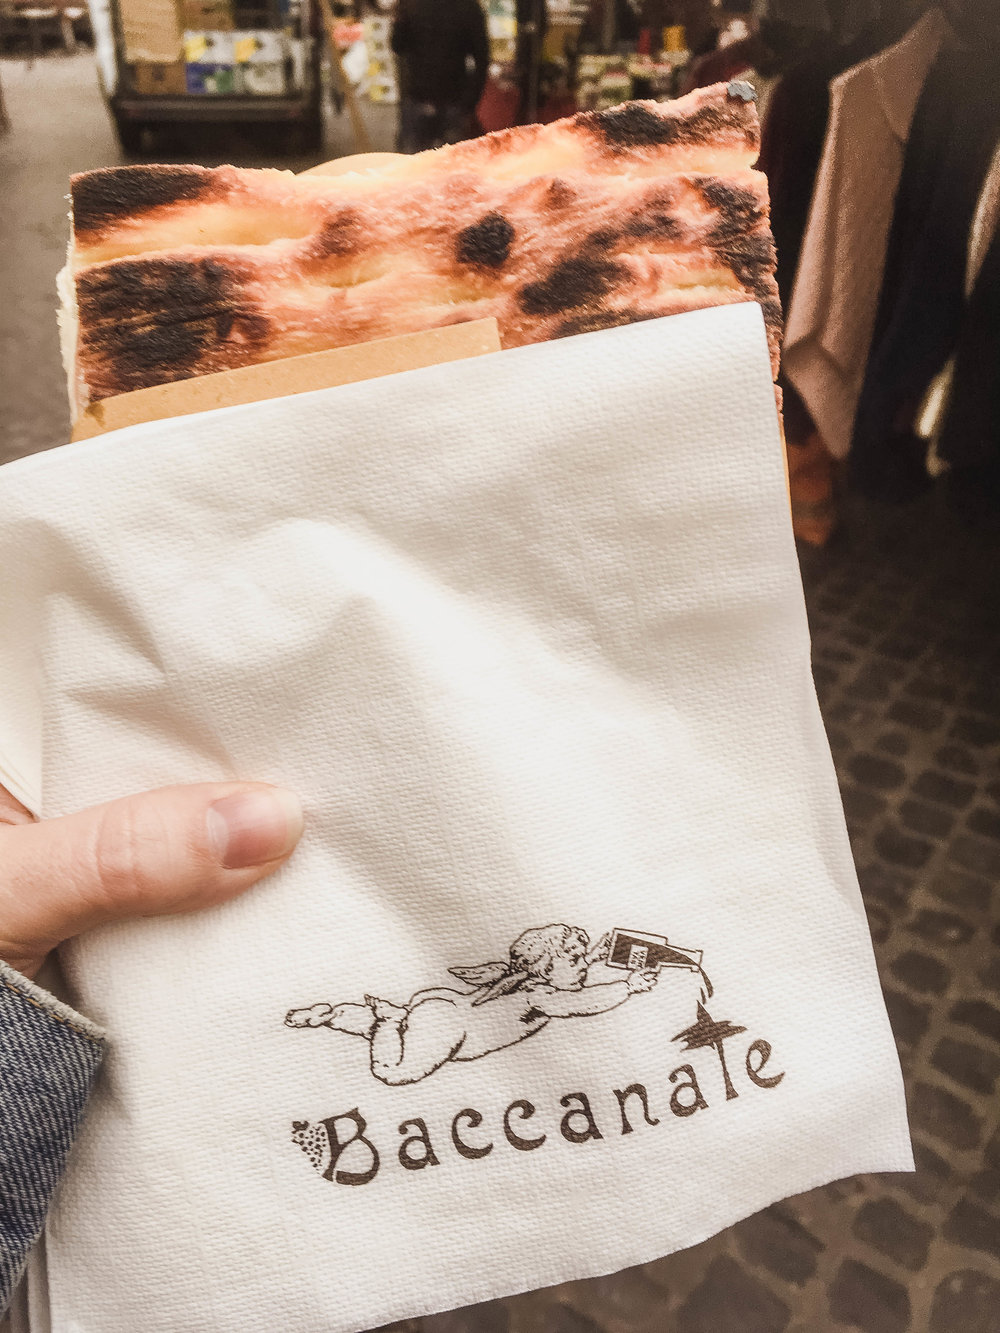 Rome_guide_baccanale-1.jpg